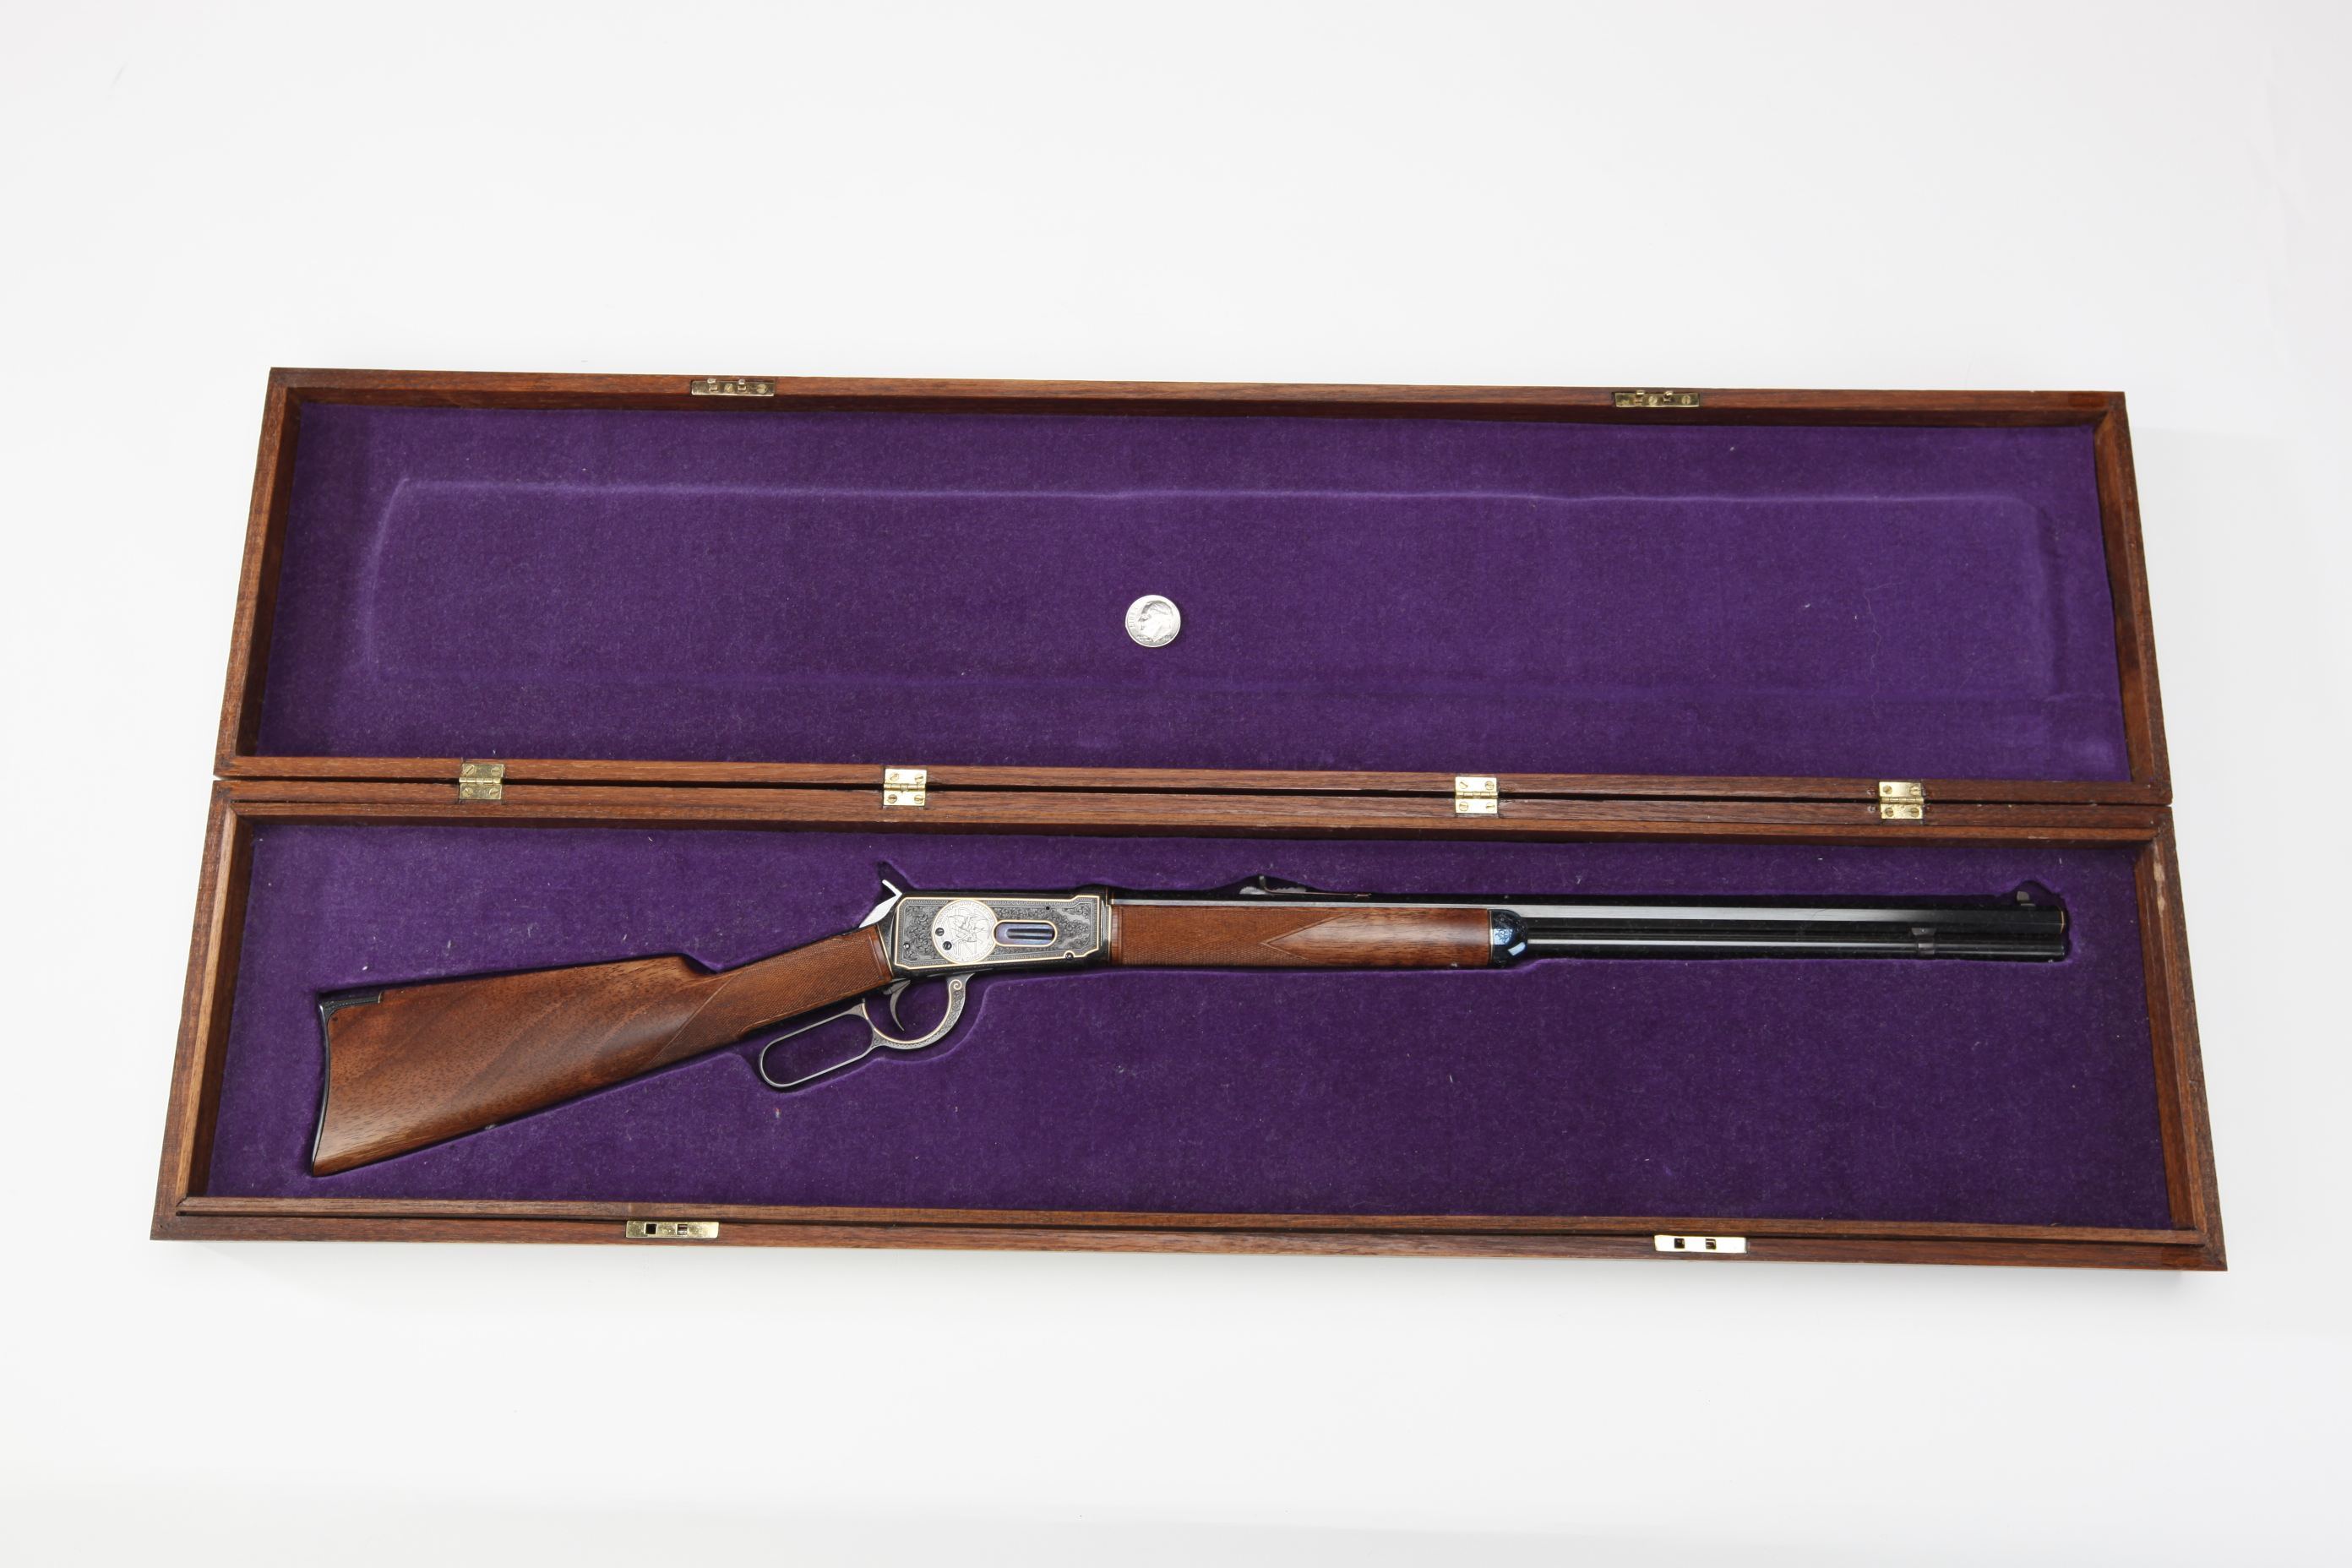 Miniature Cased and Engraved Winchester Model 1894 Rifle